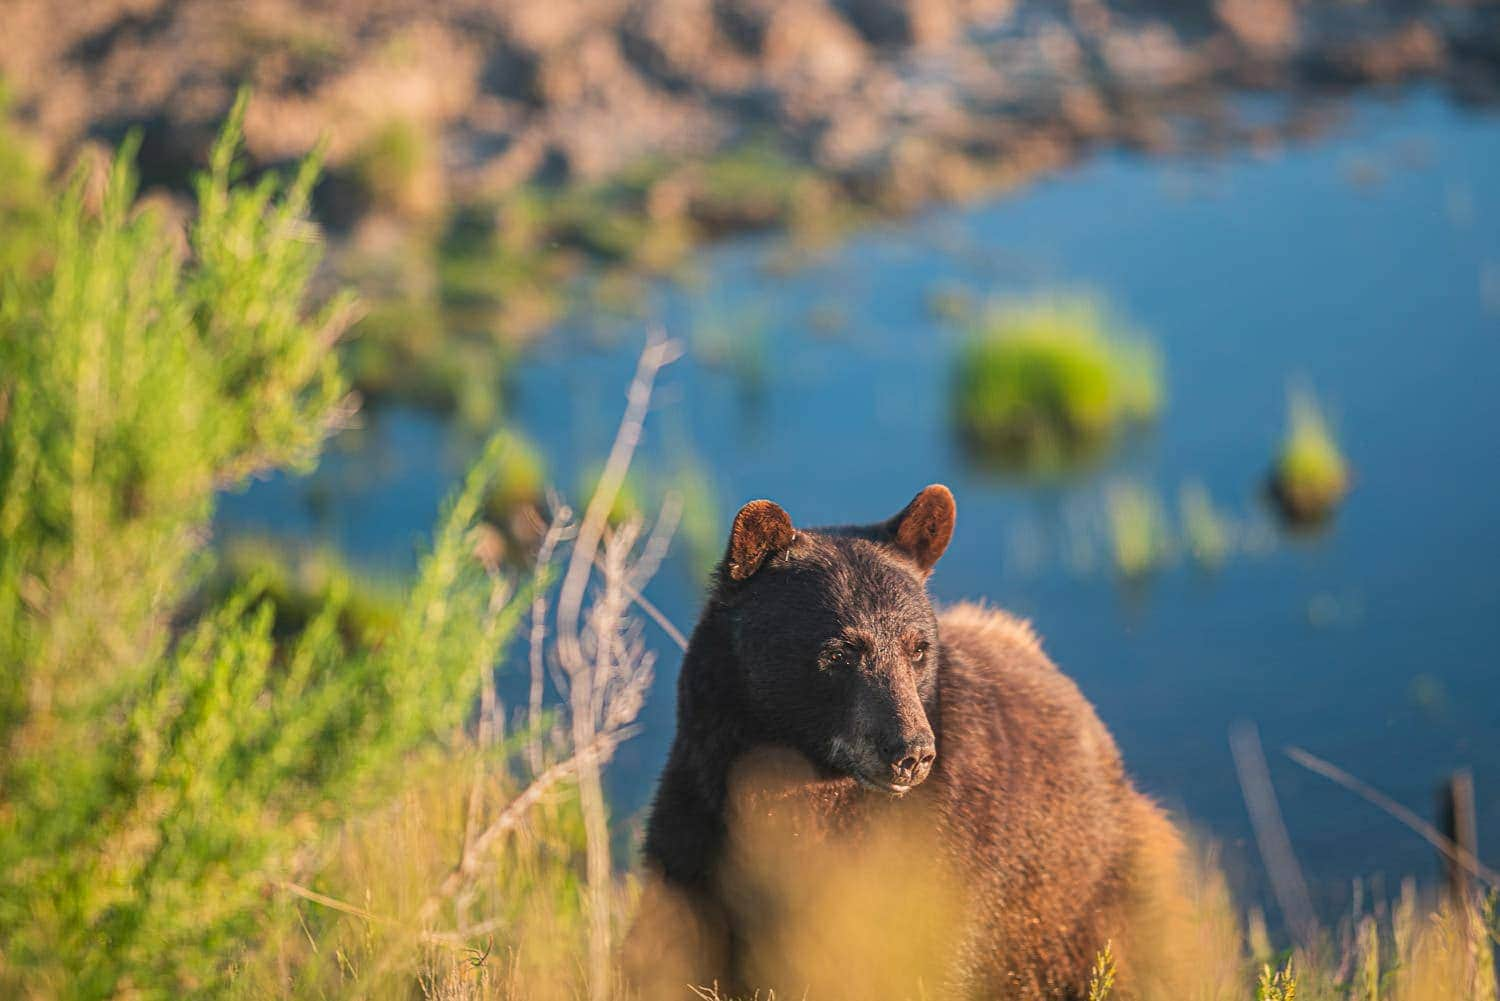 Leave no trace to protect wildlife like this black bear.